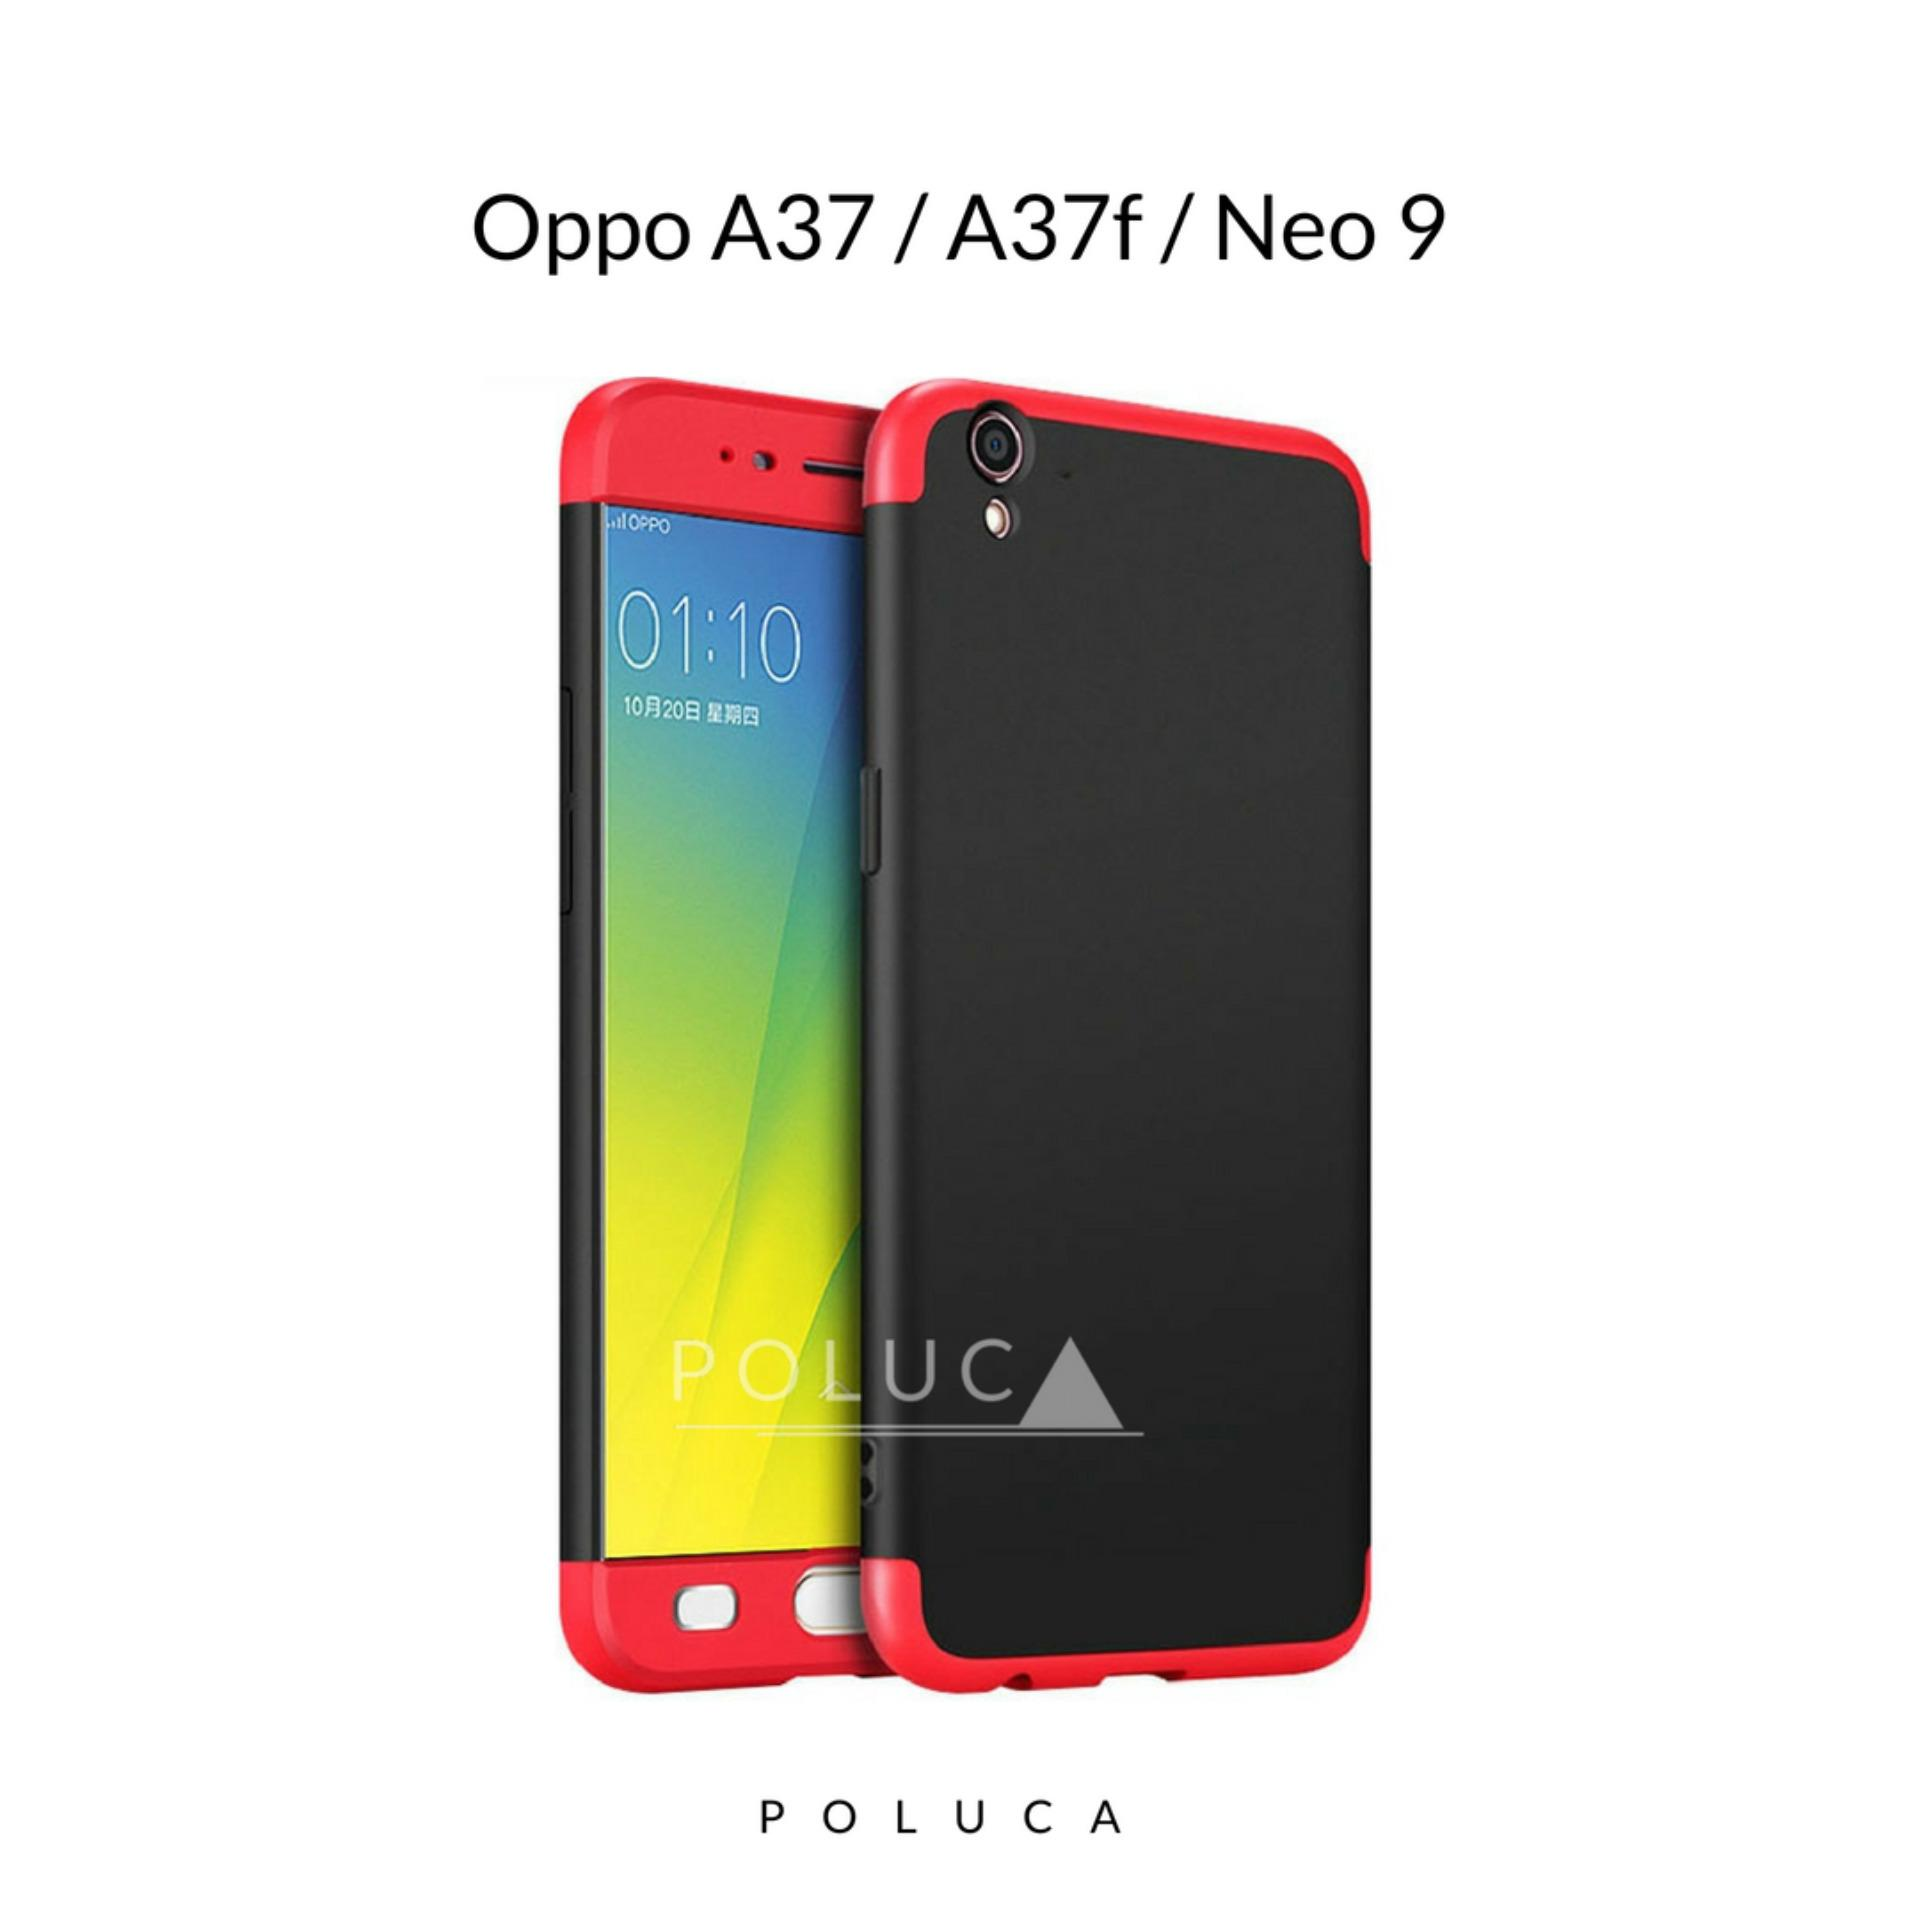 Poluca Case Oppo A37 , A37F , Neo 9 ( sama ukuran ) Premium Front Back 360 Degree Full Protection Hardcase - Black Red